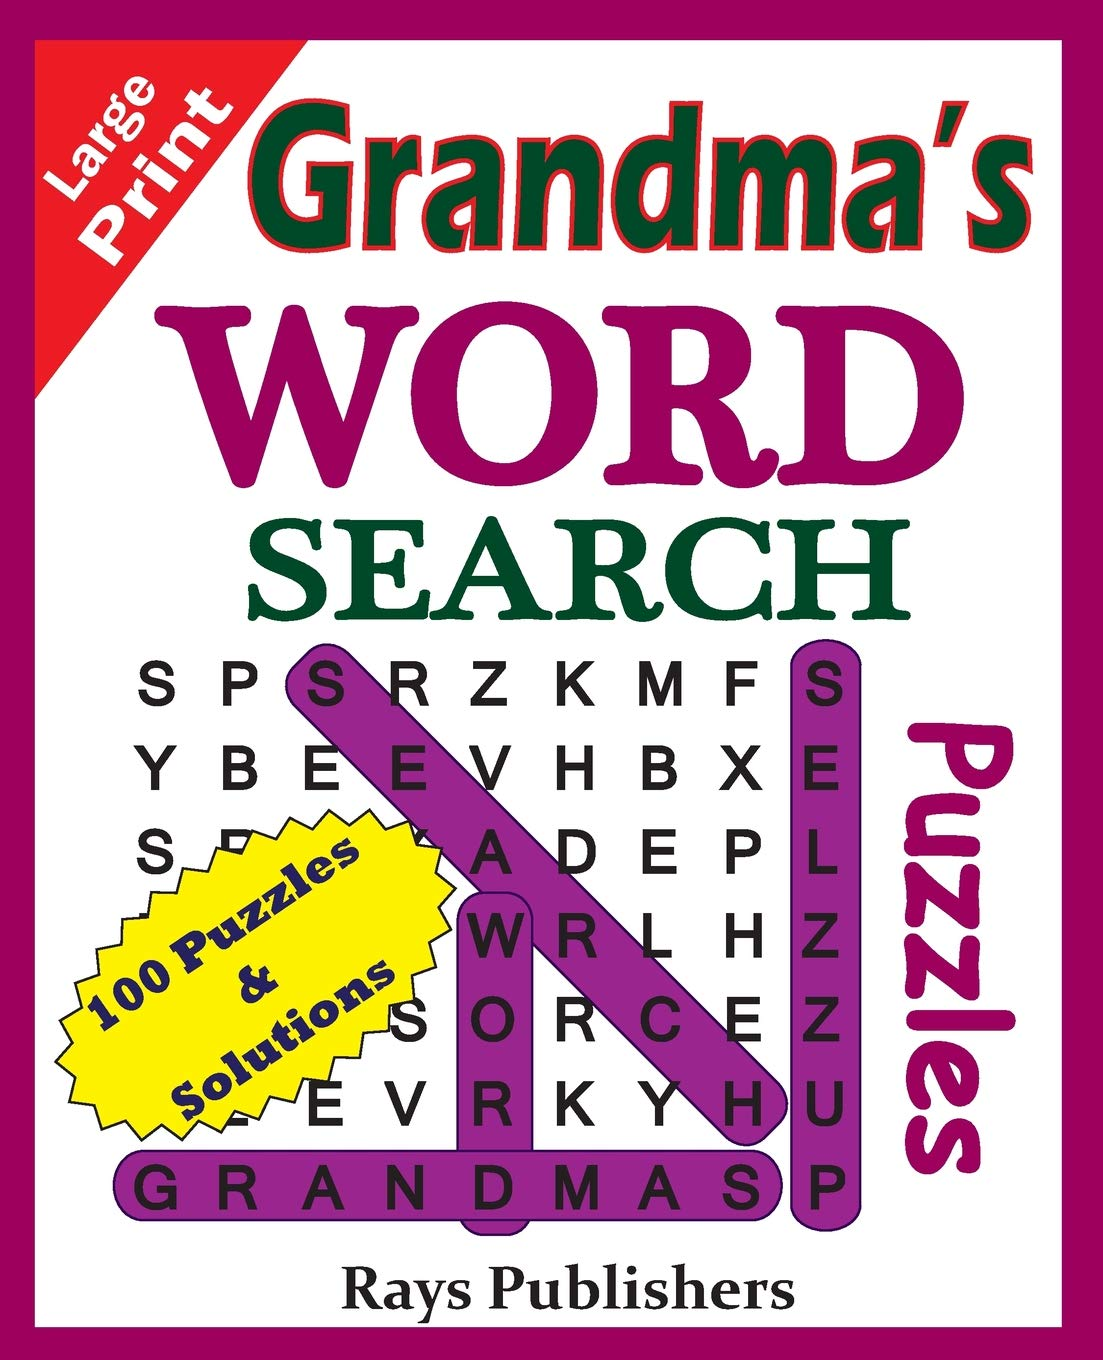 Remarkable Grandmas Word Search Puzzles Suitable For Hours Of Brain Download Free Architecture Designs Scobabritishbridgeorg